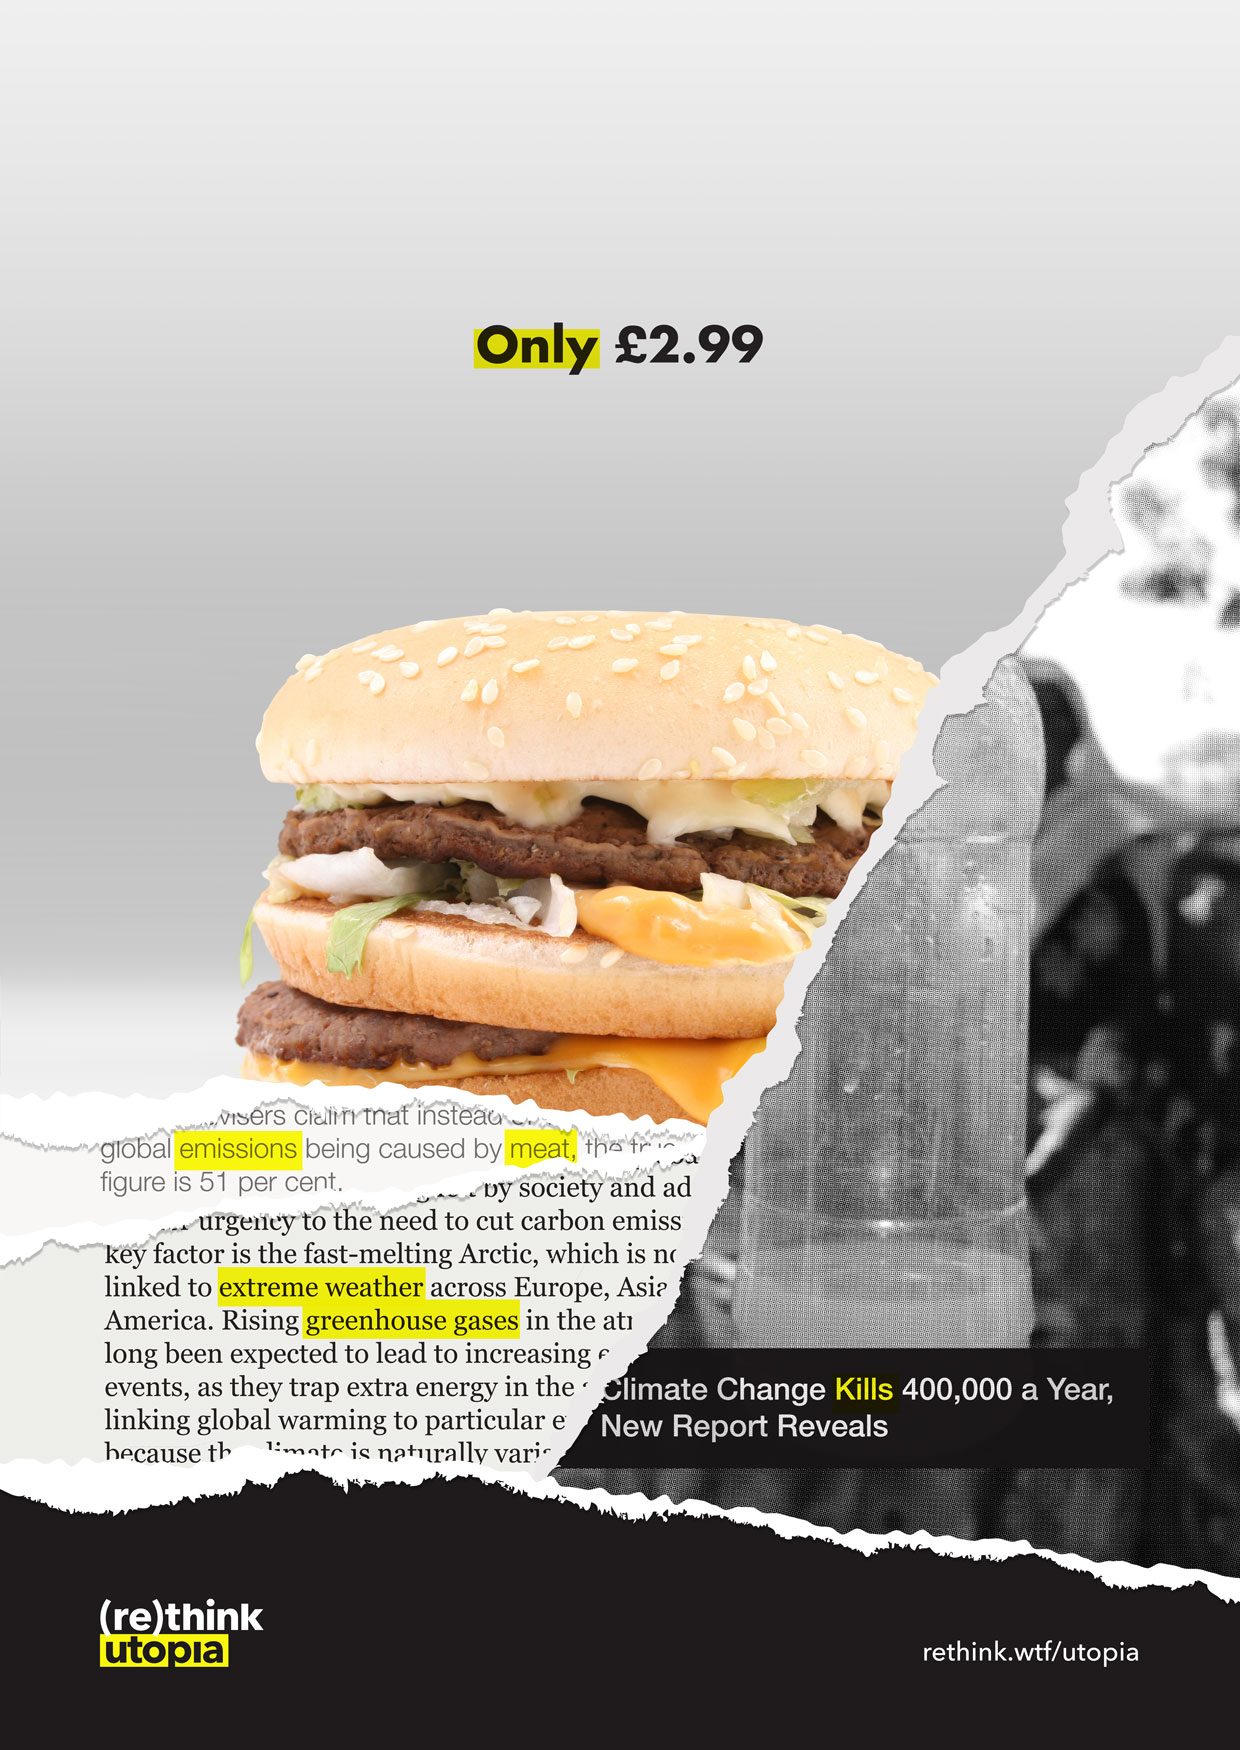 Cheap burger ad, torn to reveal layers of information about true cost.